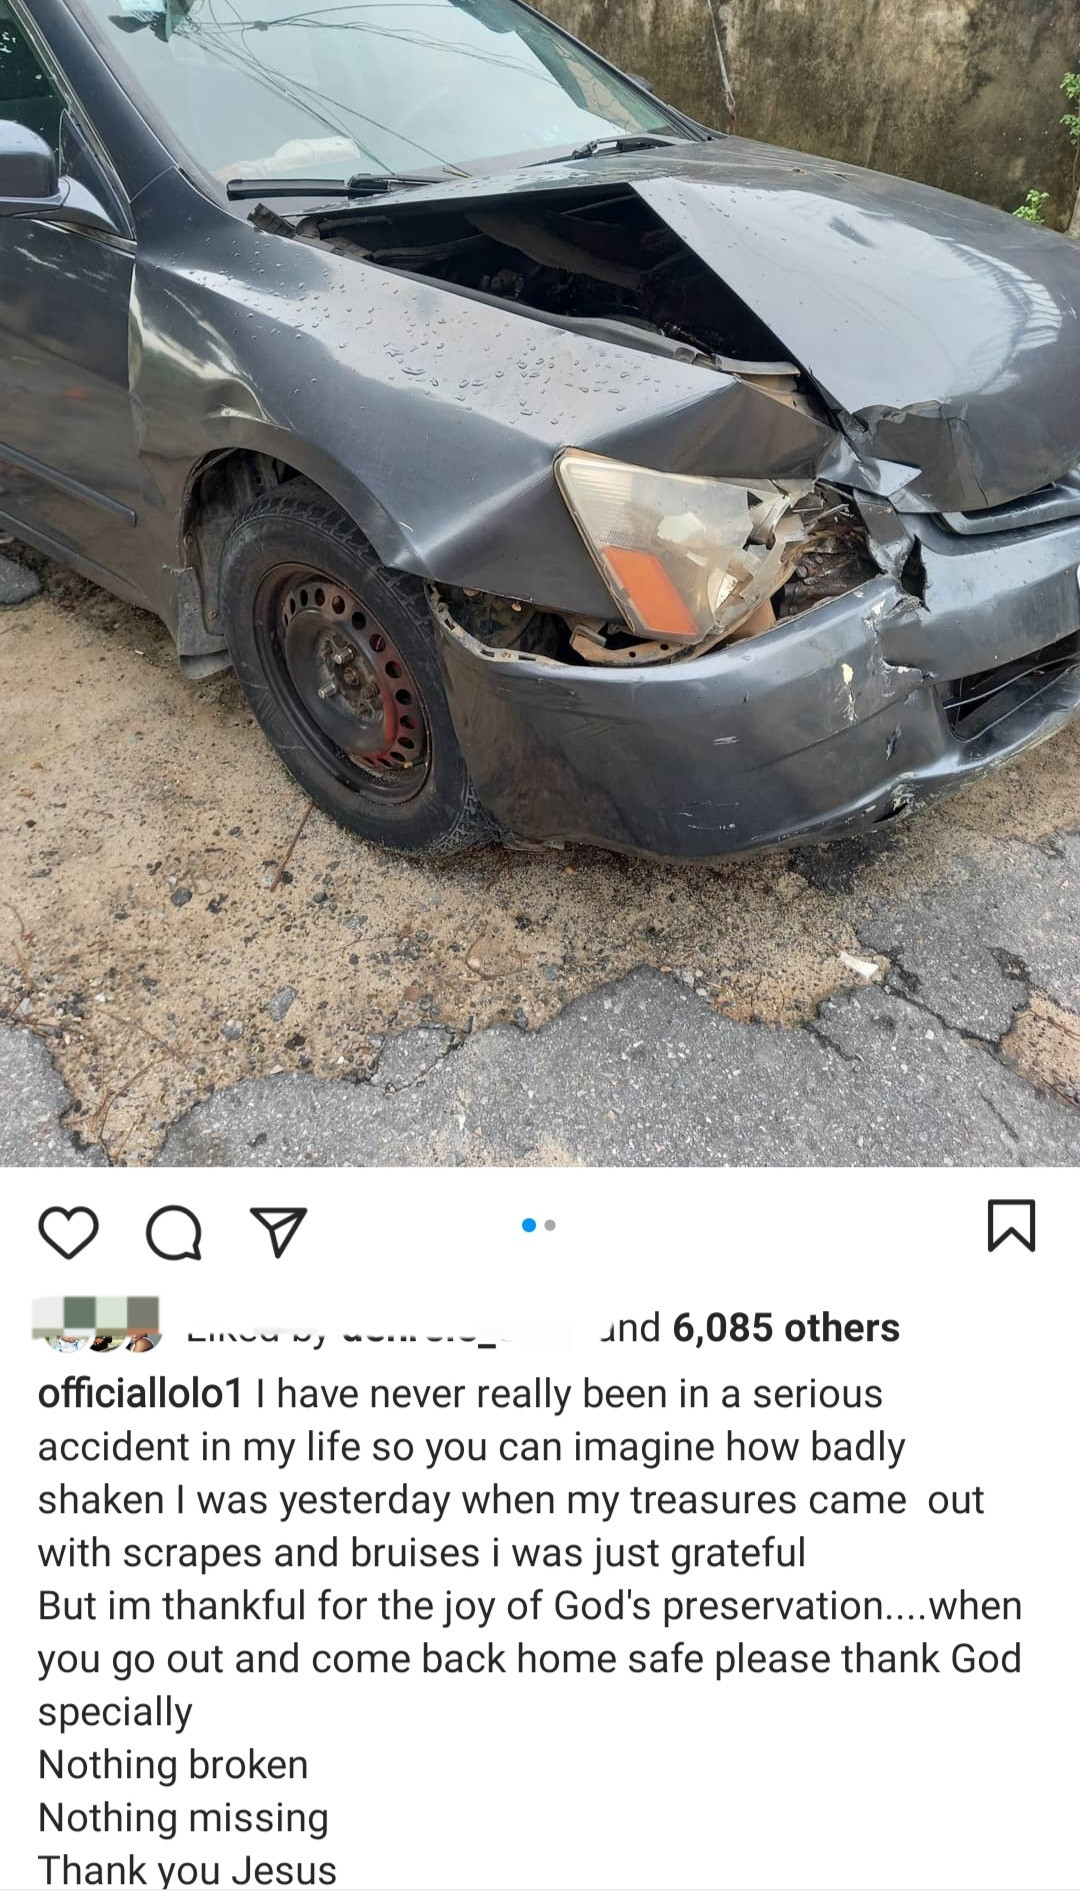 Media personality,  Lolo thanks God as she and her children survive accident